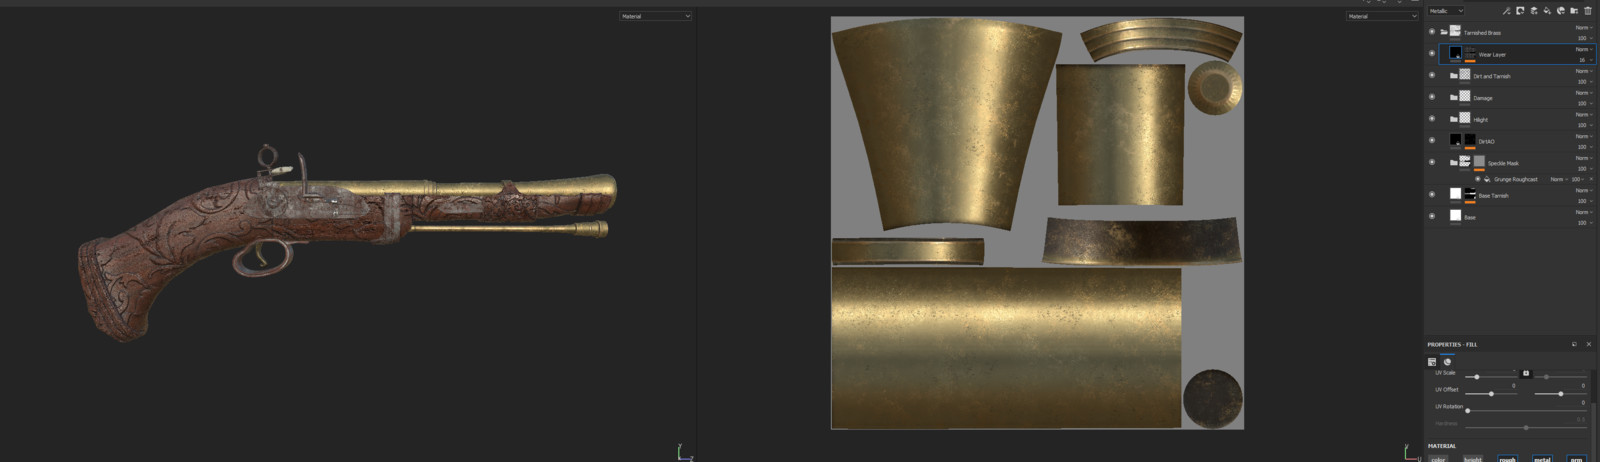 Brass texture used a few layers of tarnish and dirt adjusted with mask generators and procedurals. Added a hilight layer in the middle to add shine onto brass rings and an overall sheen. Added gun powder to barrel opening.